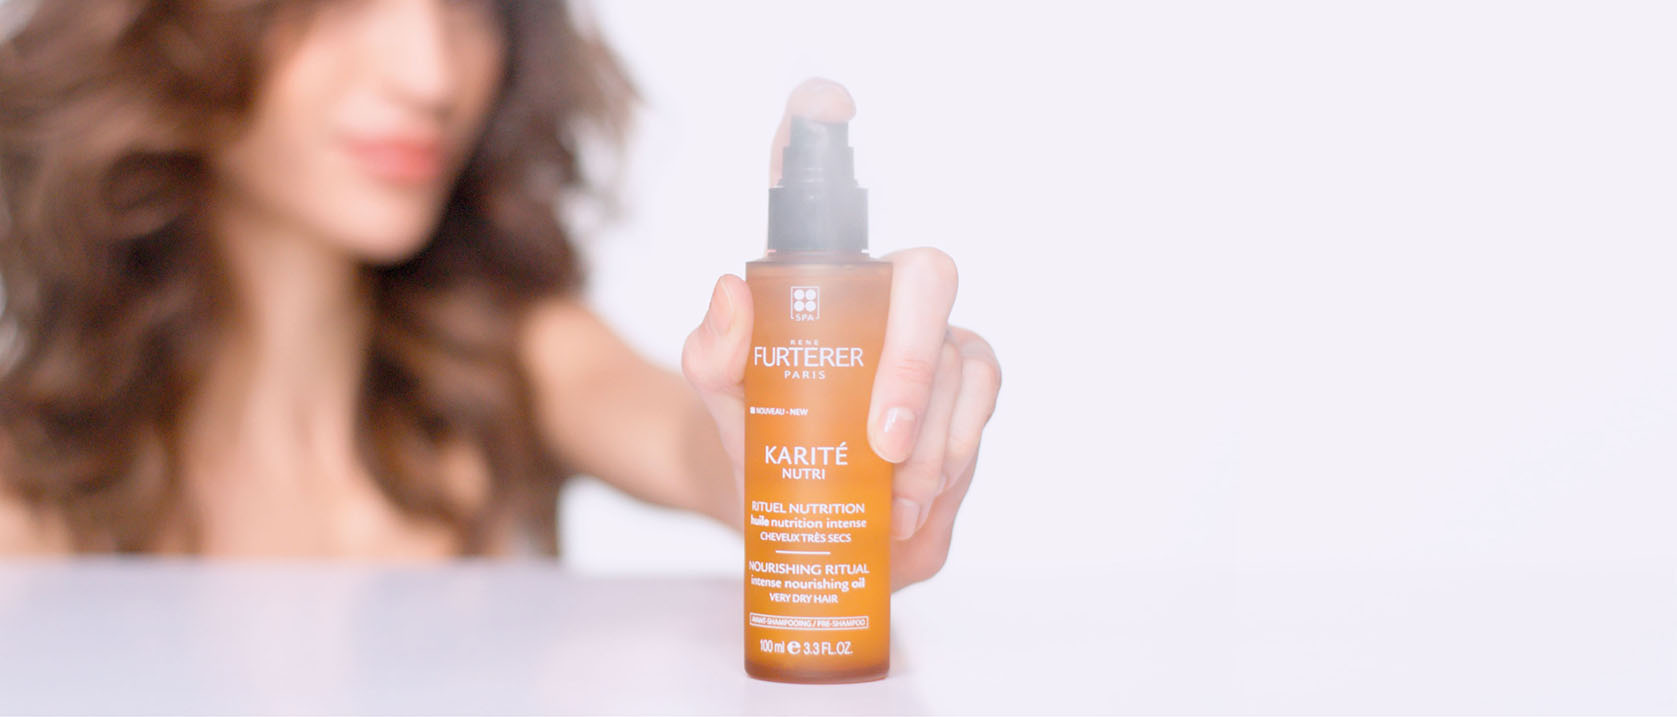 KARITE NUTRI Intense nourishing oil application video  | René Furterer